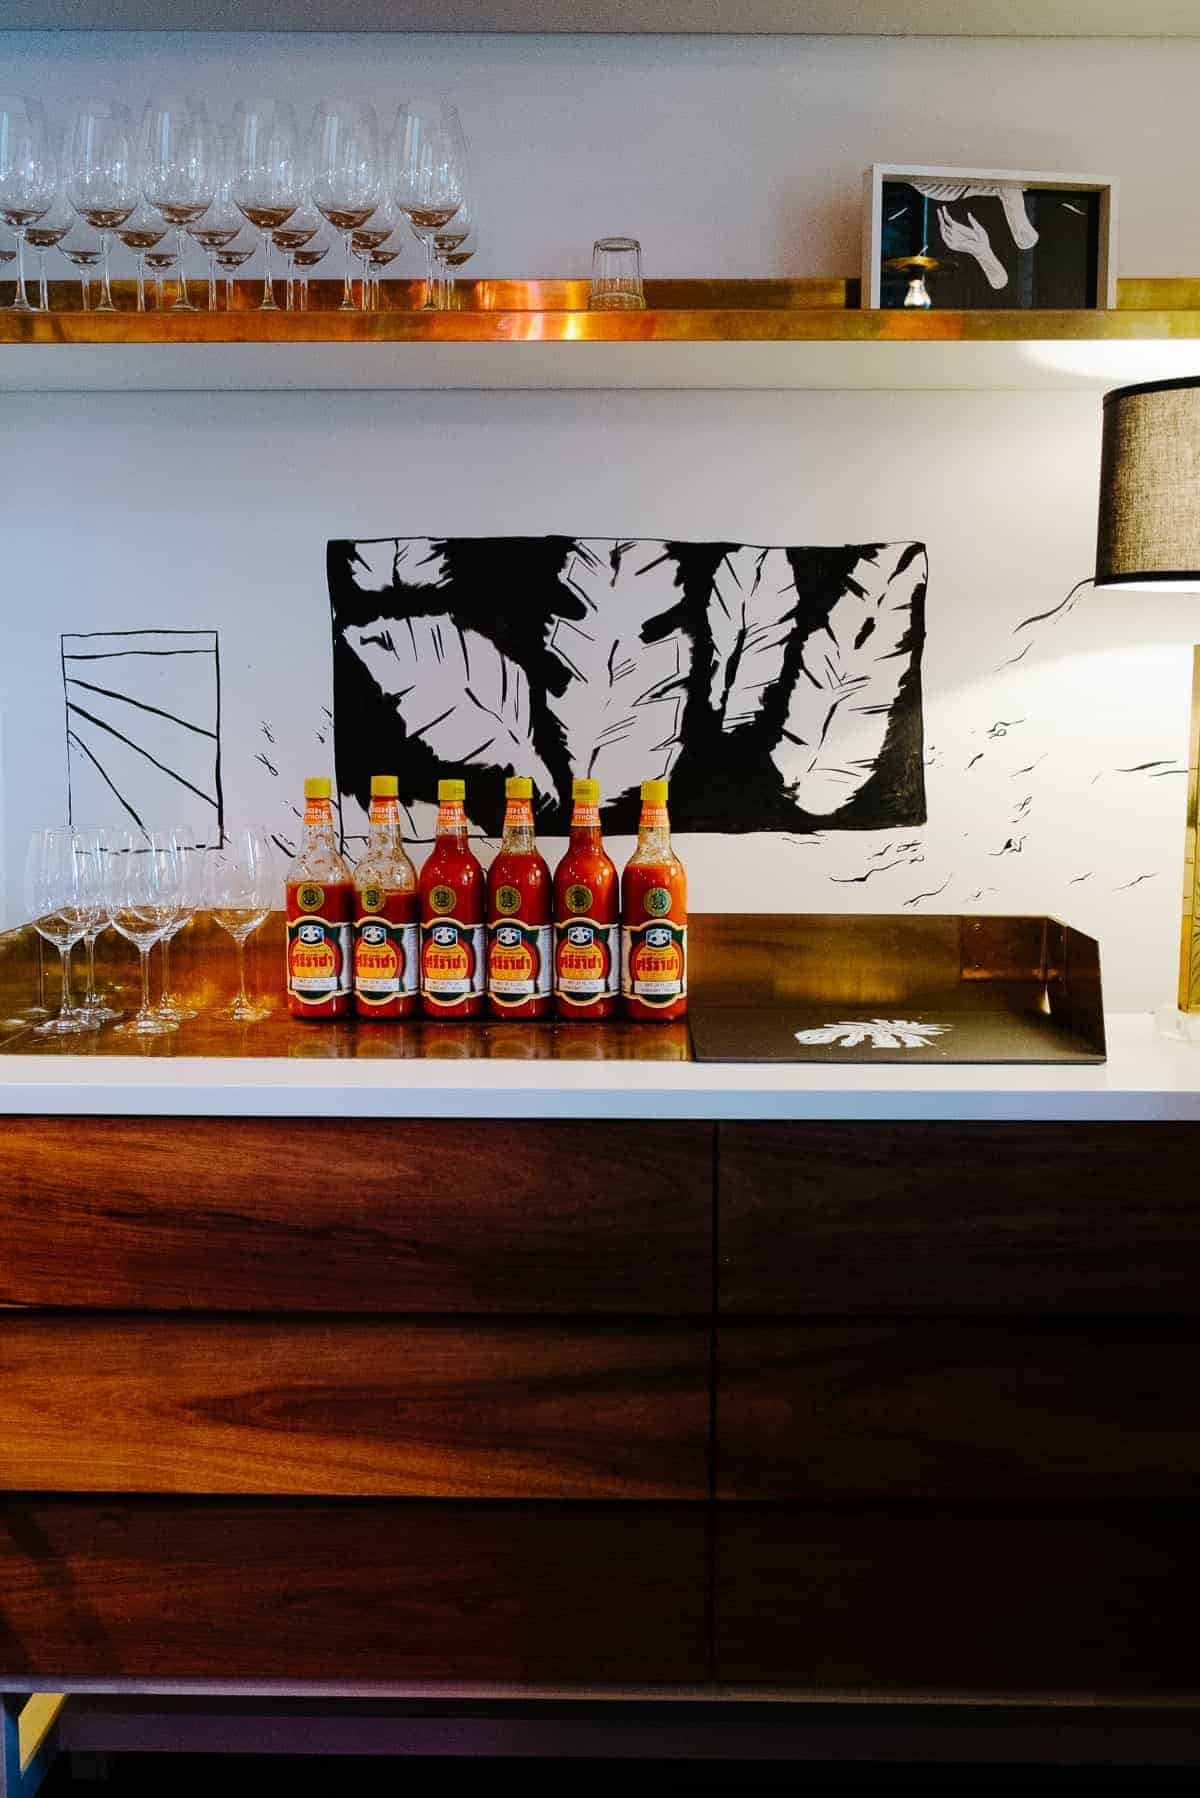 hot sauce bottles all lined up on ca counter at Golden Boy restaurant in Adelaide